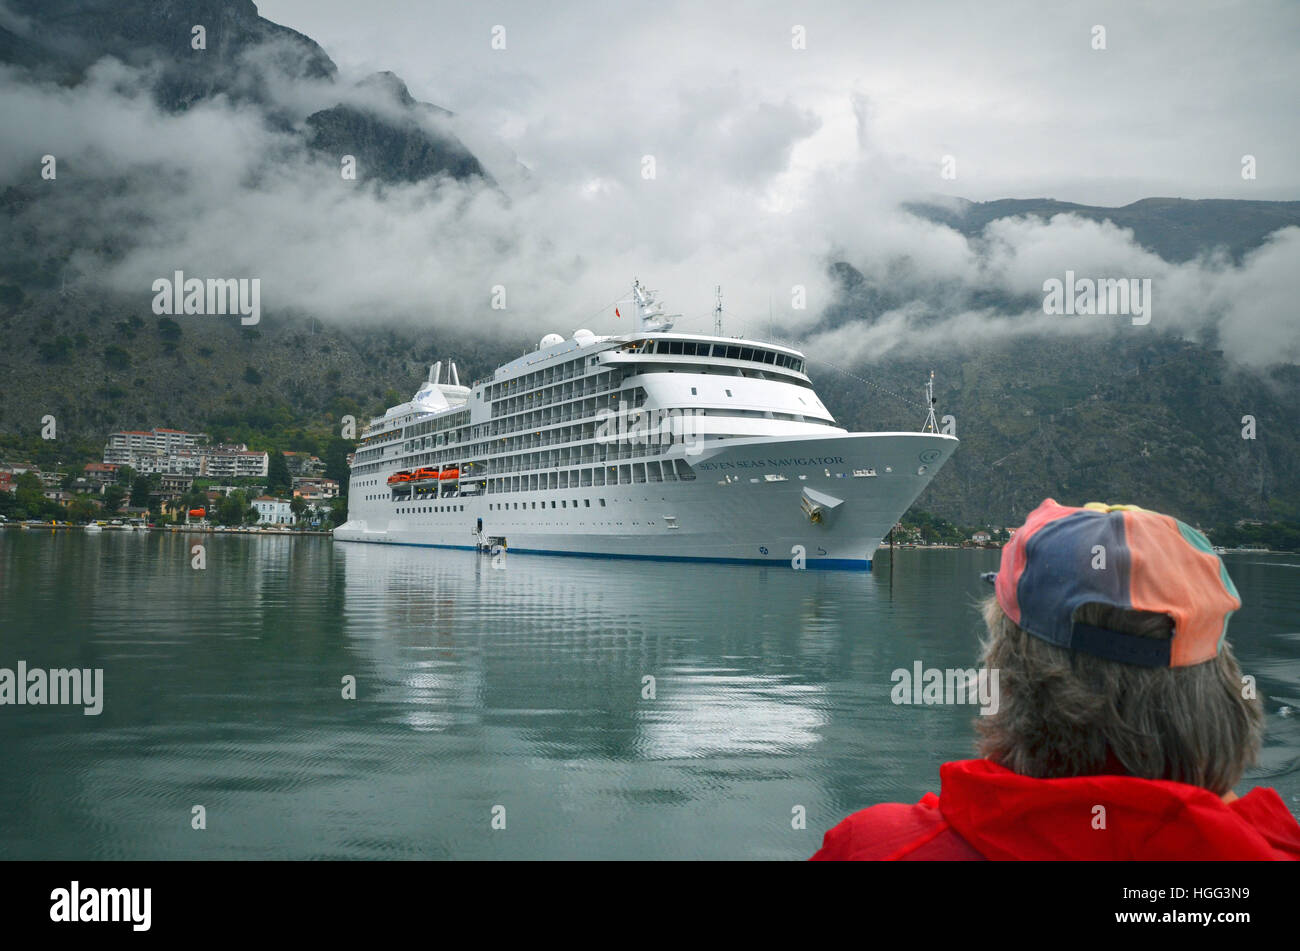 A cruise ship anchors at the Bay of Kotor in misty weather as a sightseer looks on. - Stock Image